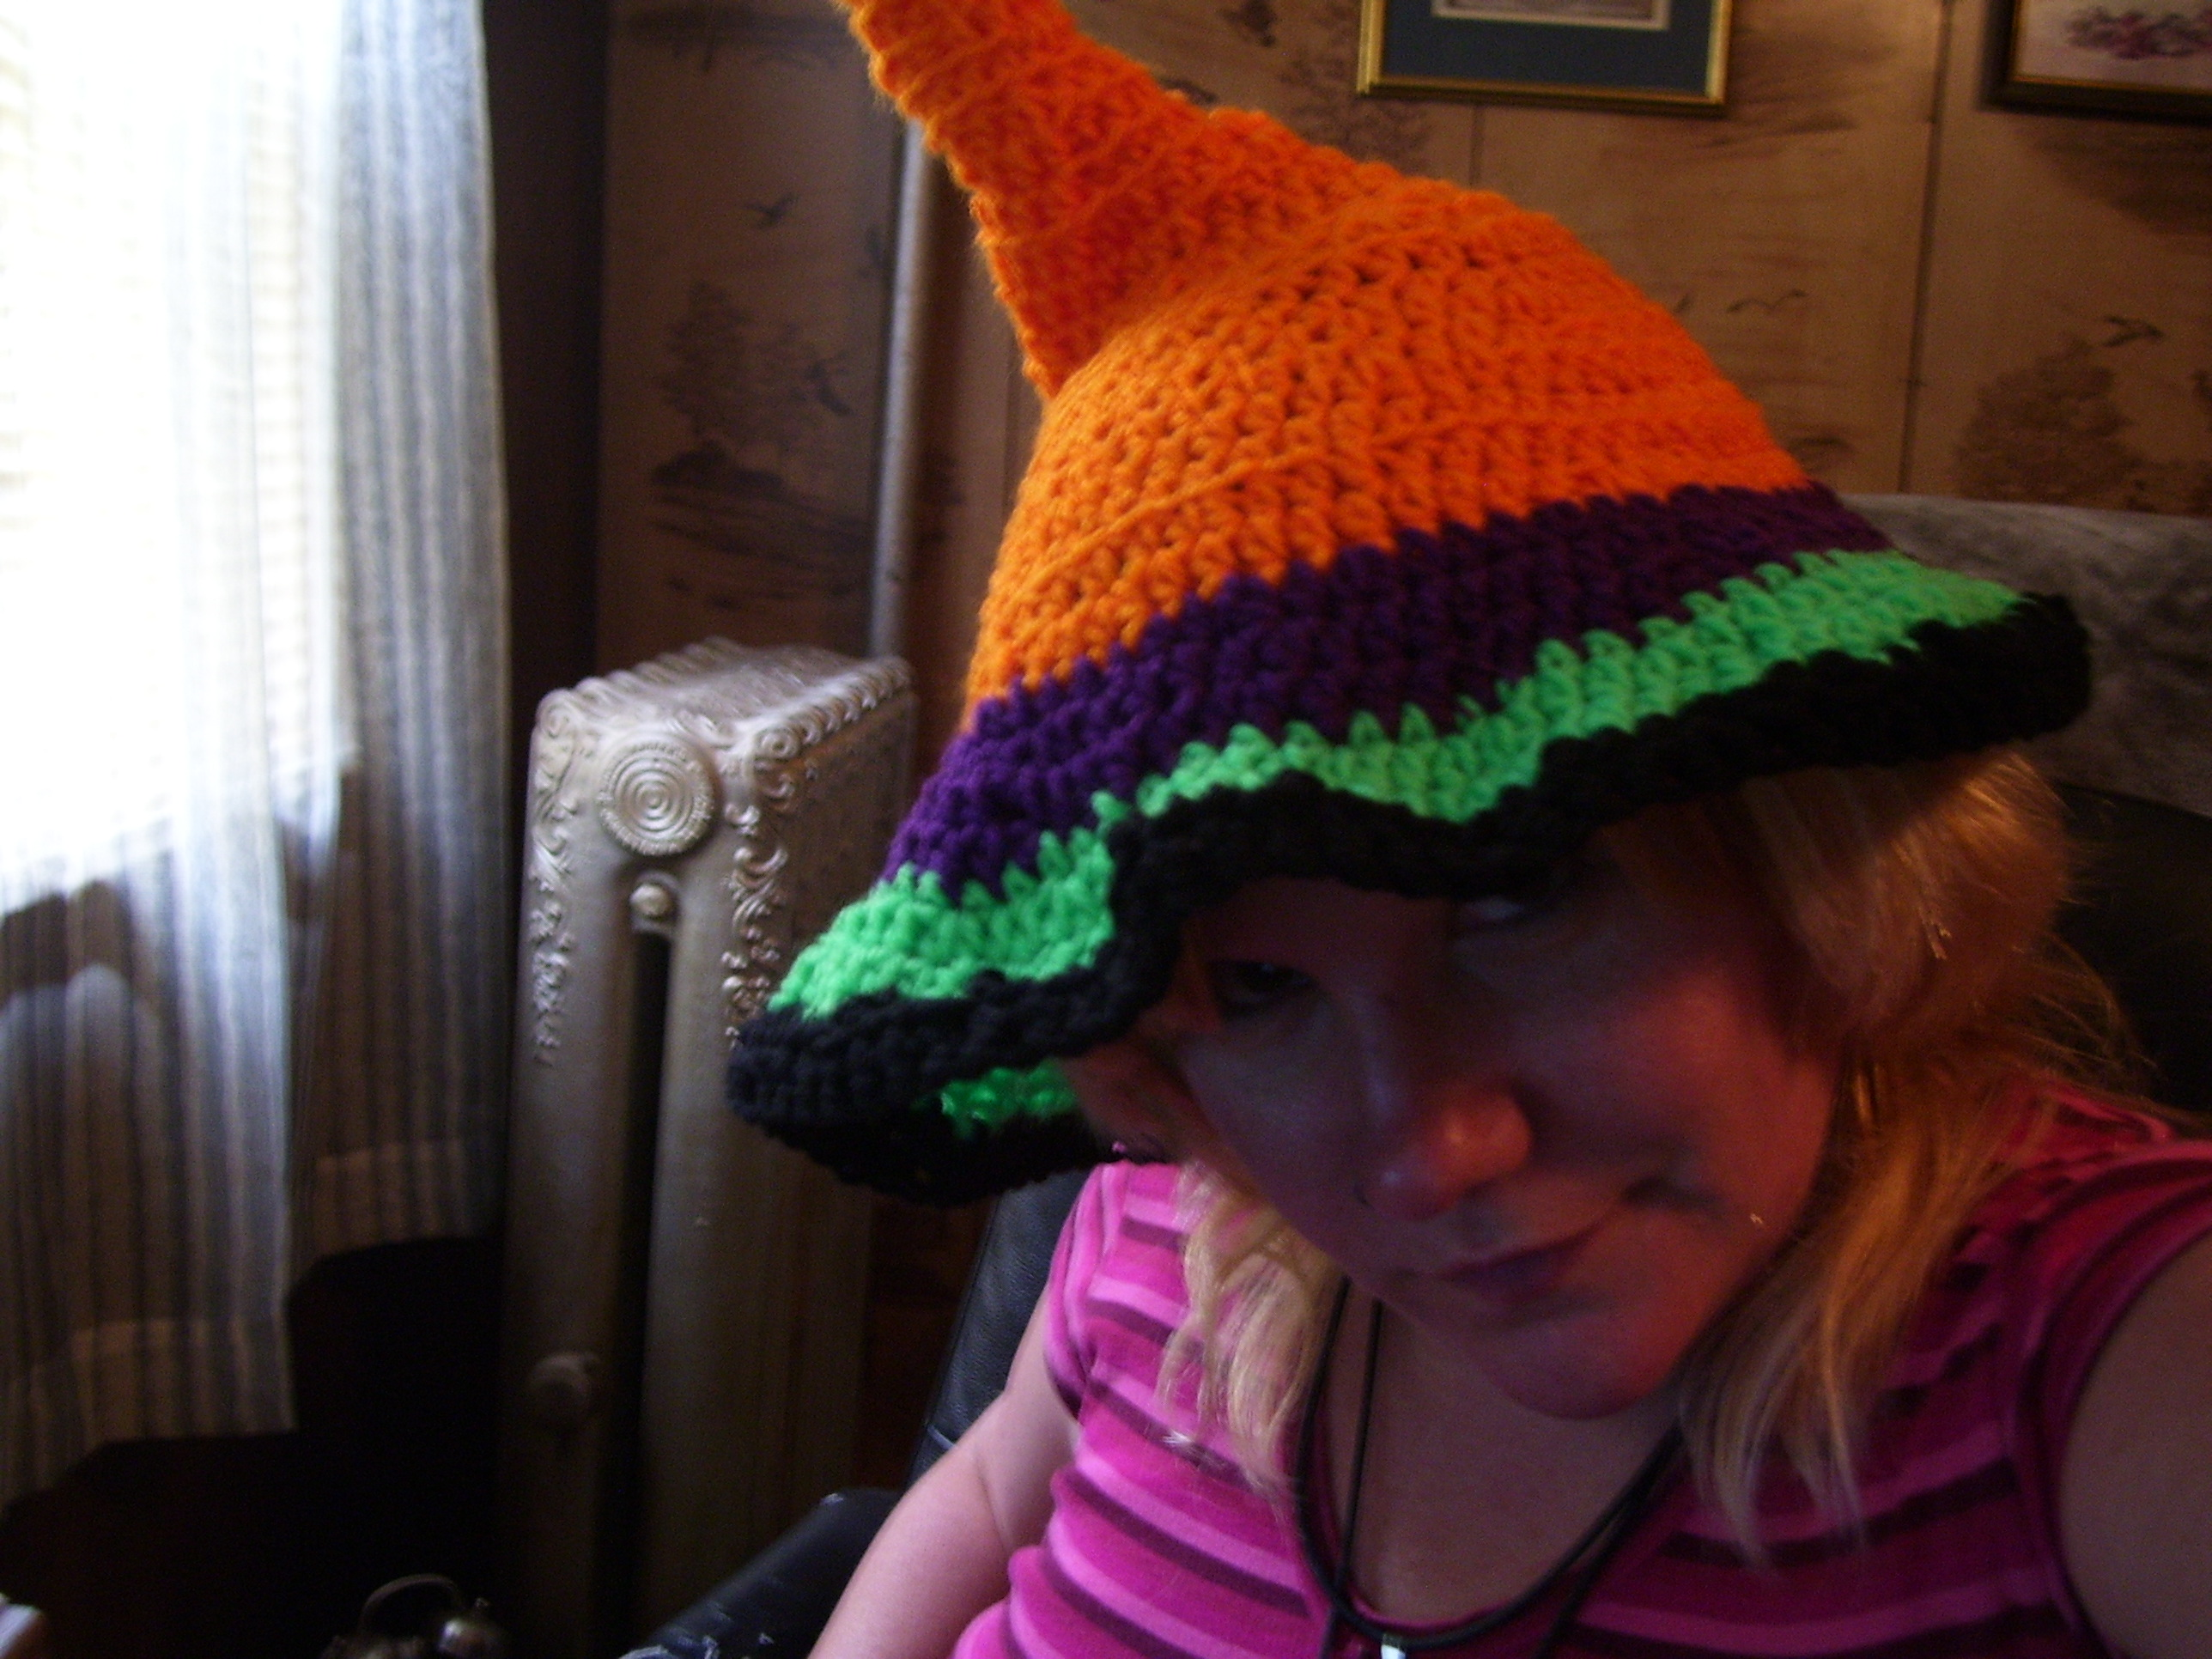 witchy sleeper crocheted hat